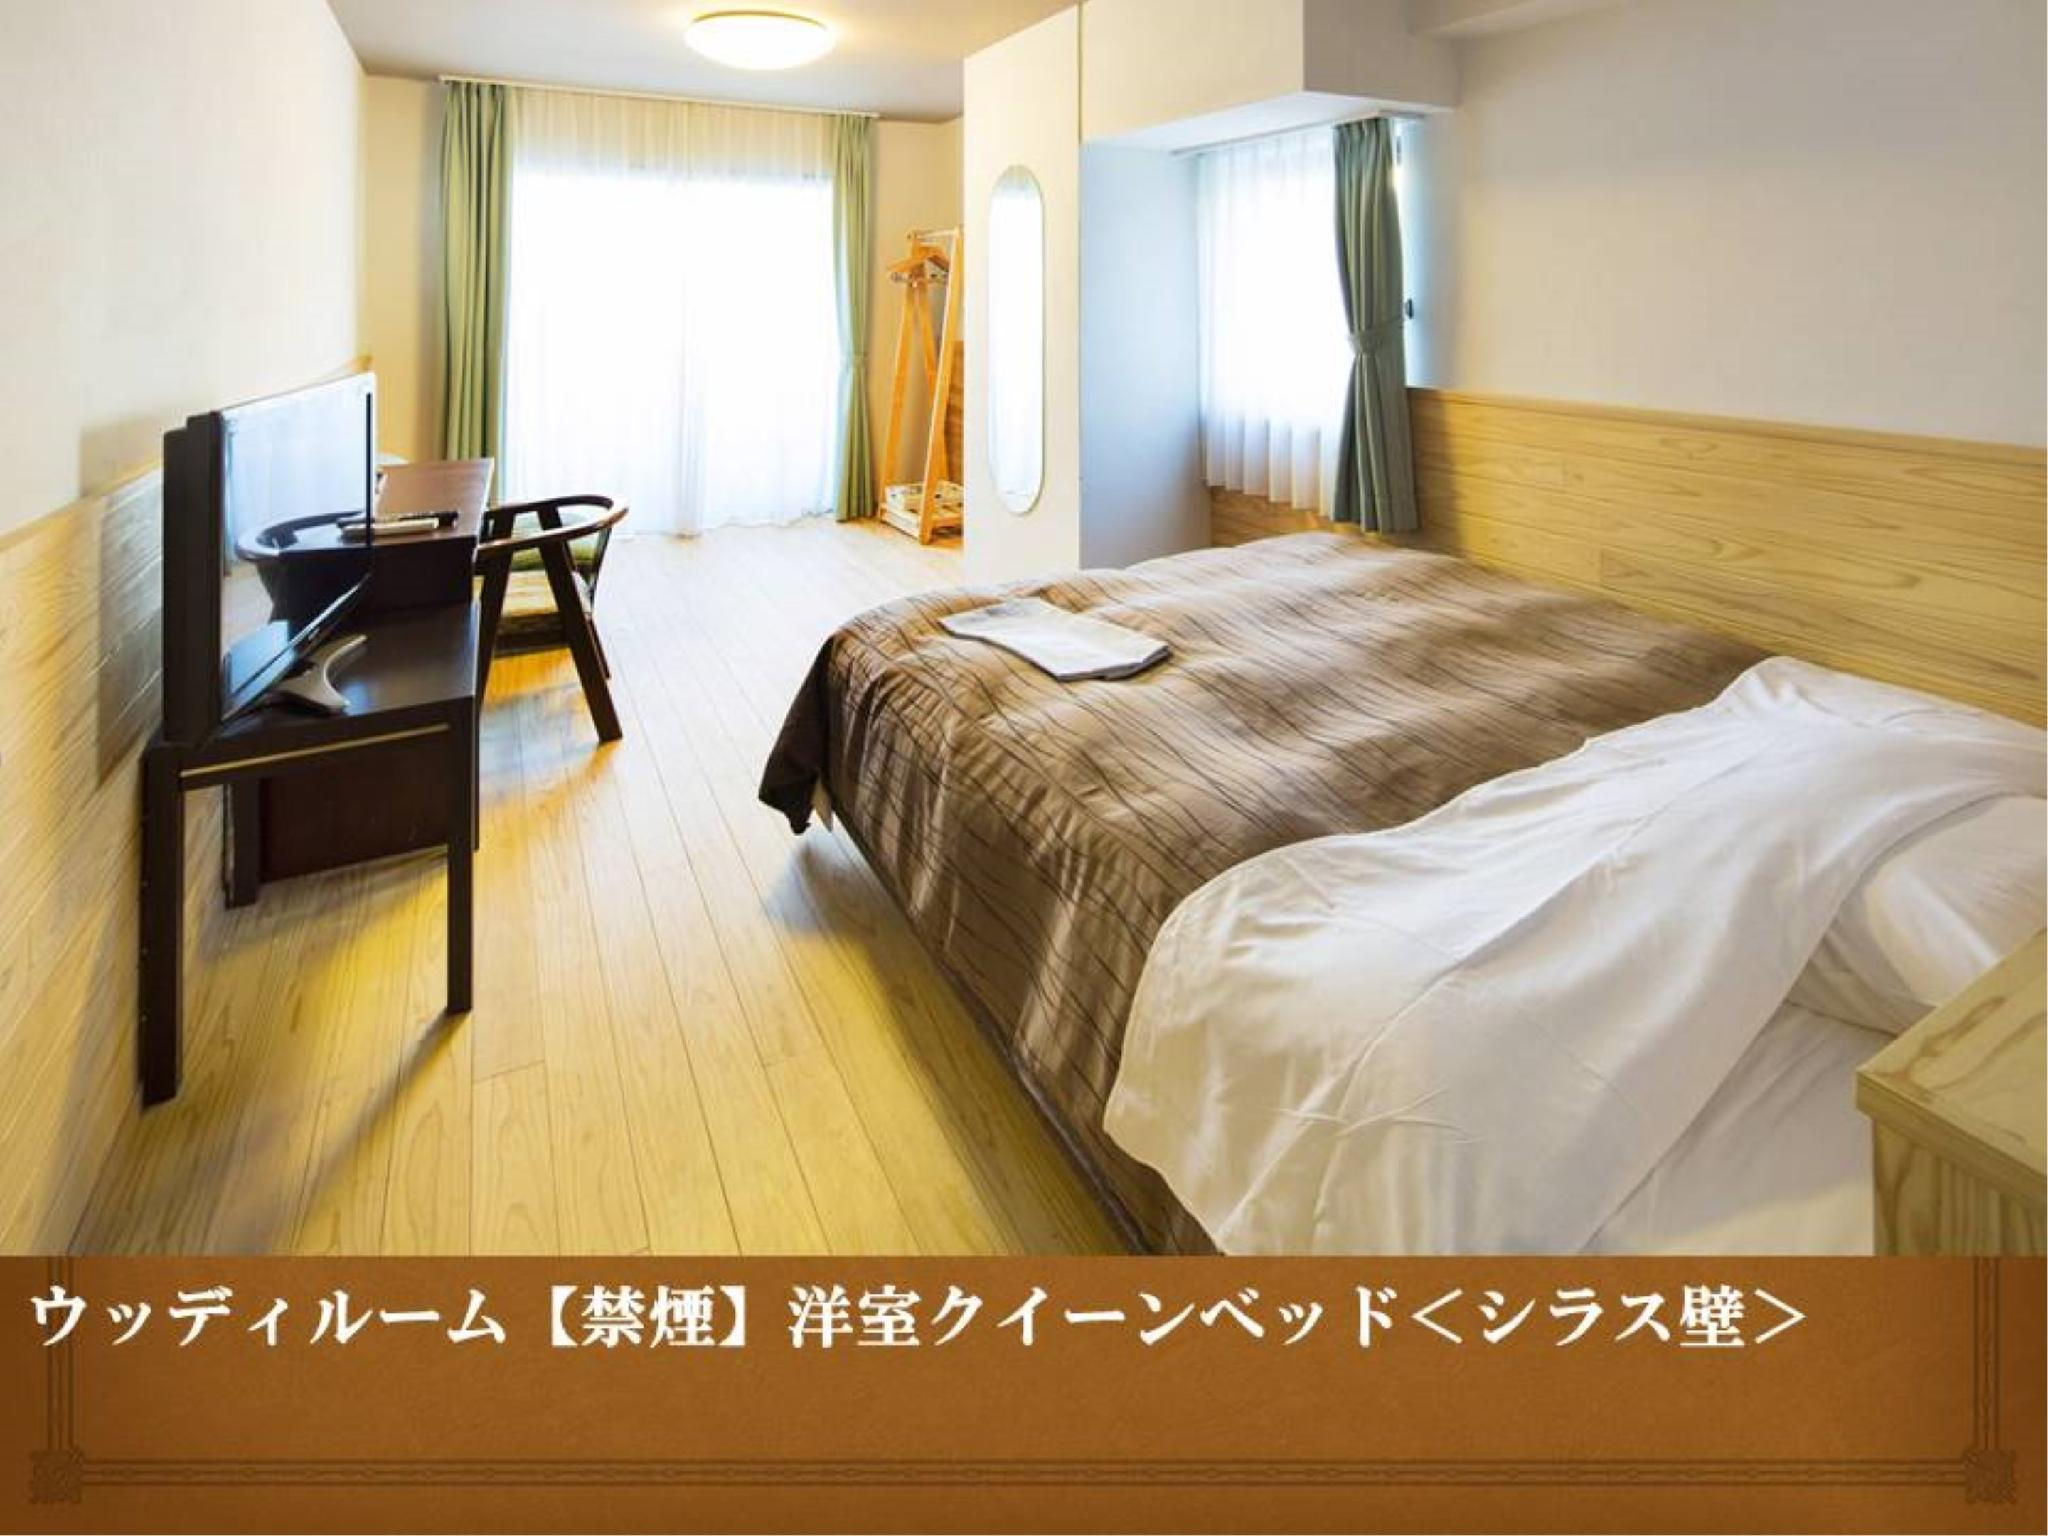 【禁煙】洋室<ウッディ&シラス壁クイーンベッド(洗濯機付)>|22平米 (Western-style Room with Washing Machine (Timber & Shirasu Wall + Queen Bed))